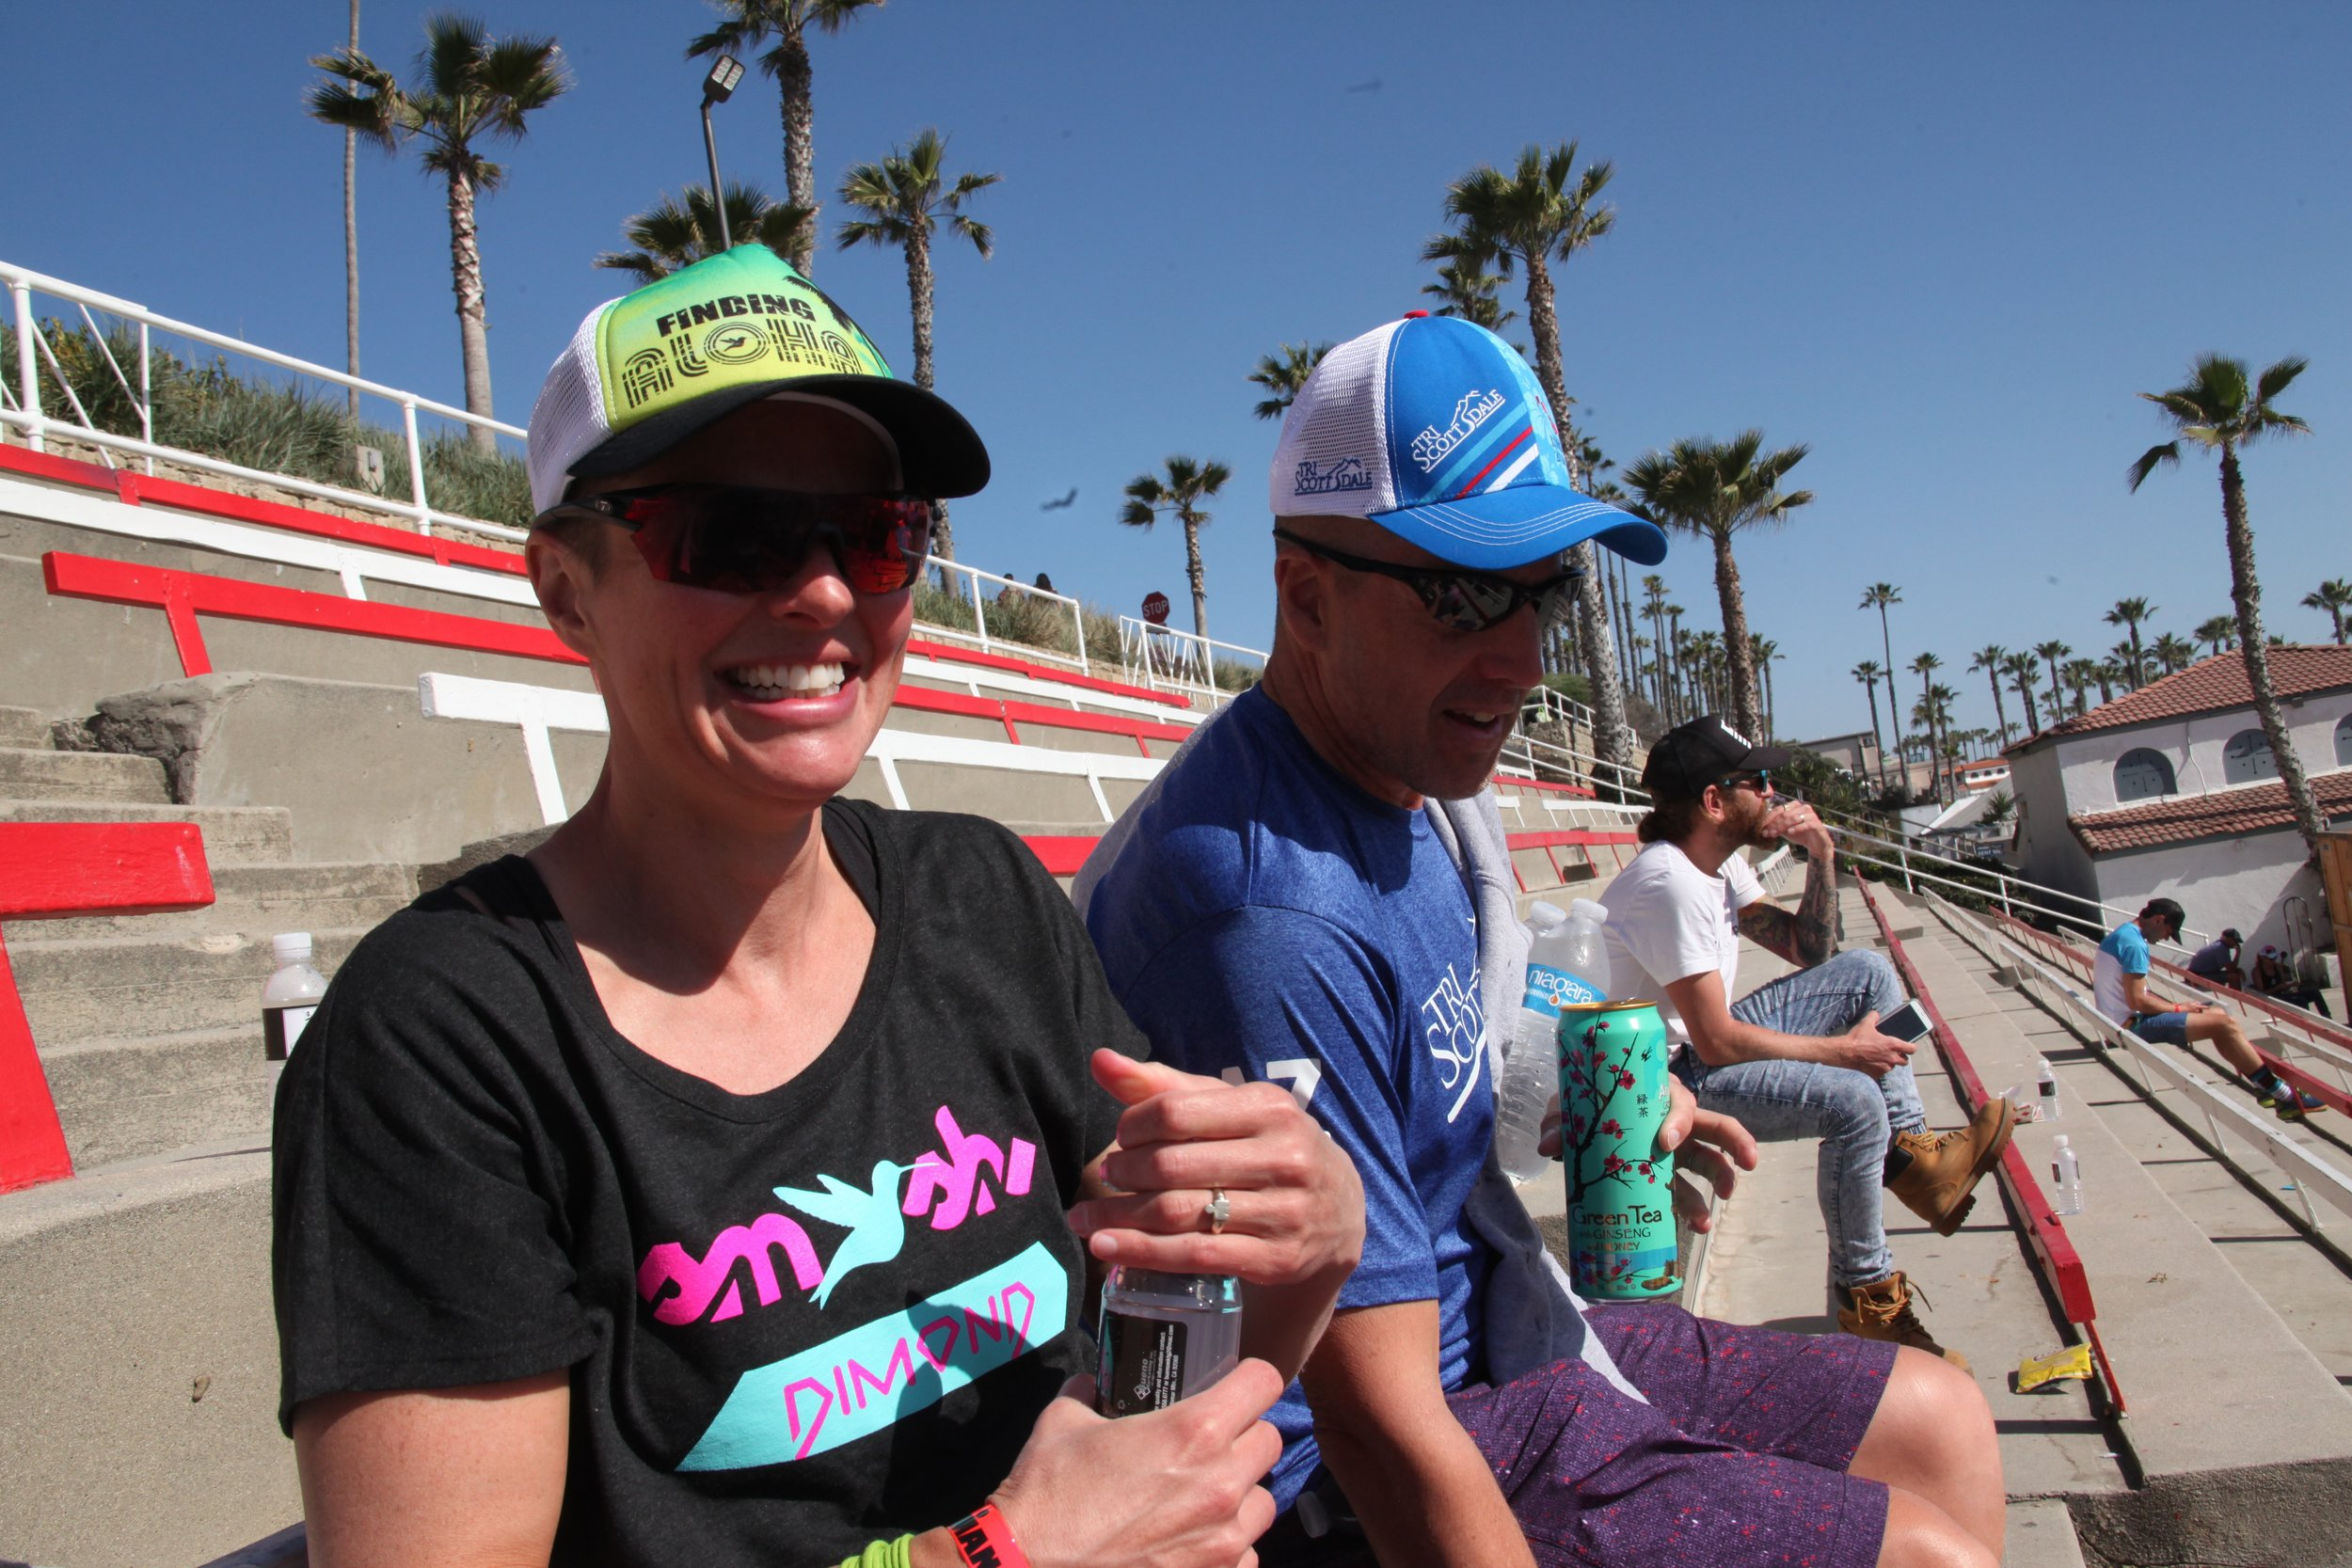 Mary and Dan at the Oceanside 70.3 awards ceremony.